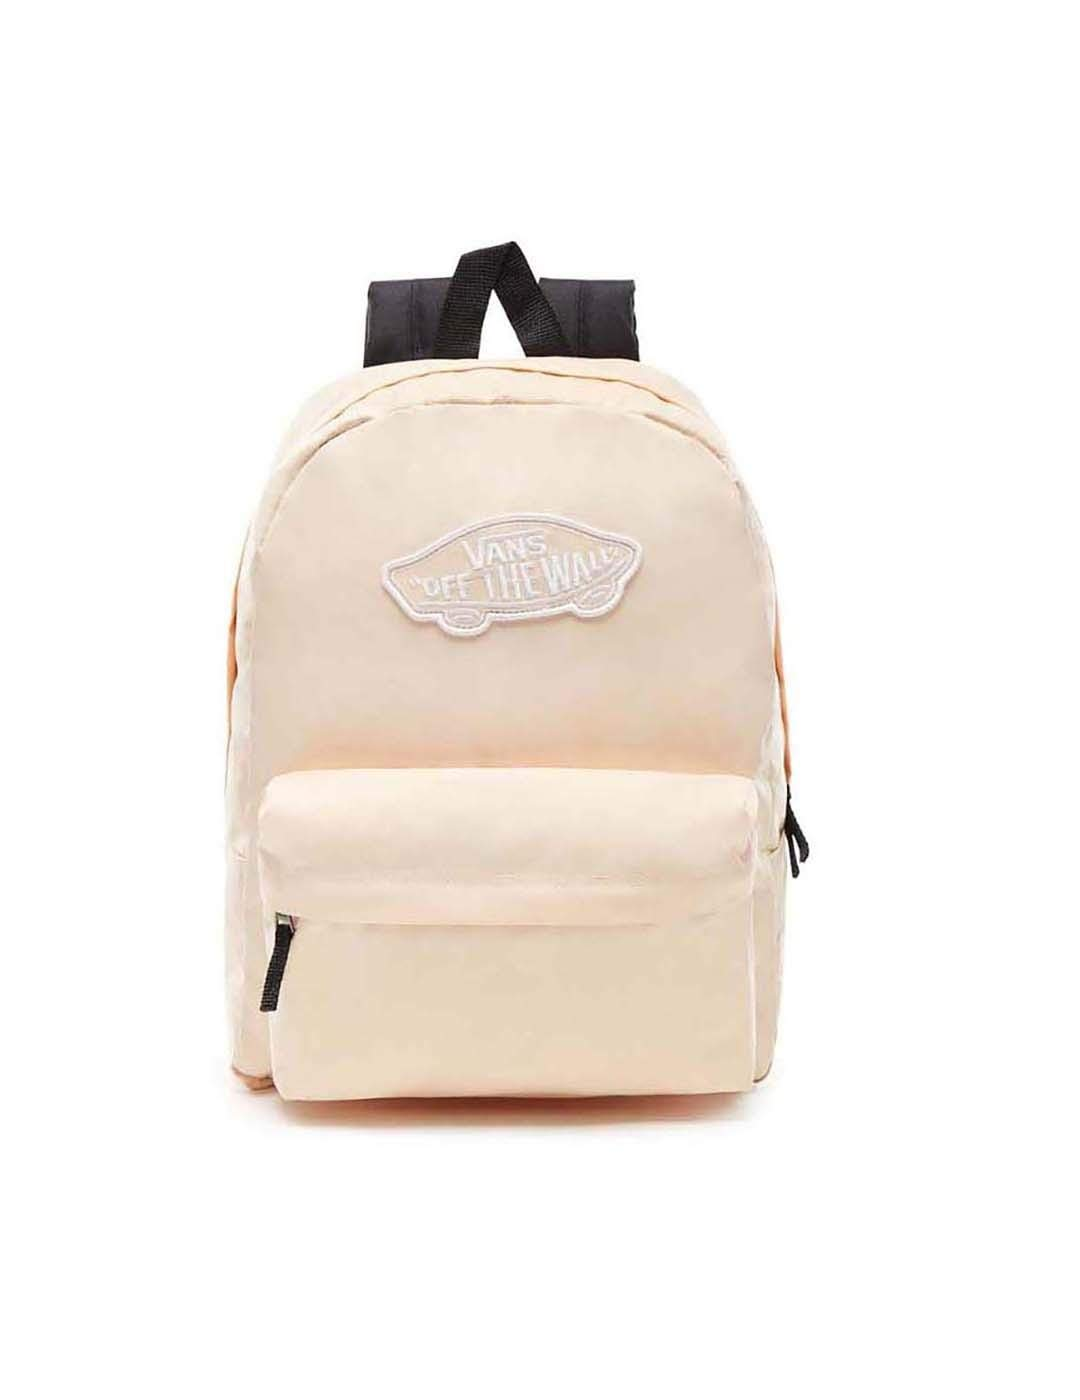 Vans Realm Backpack Mochila Tipo Casual, 42 Centimeters ParaViajes.club